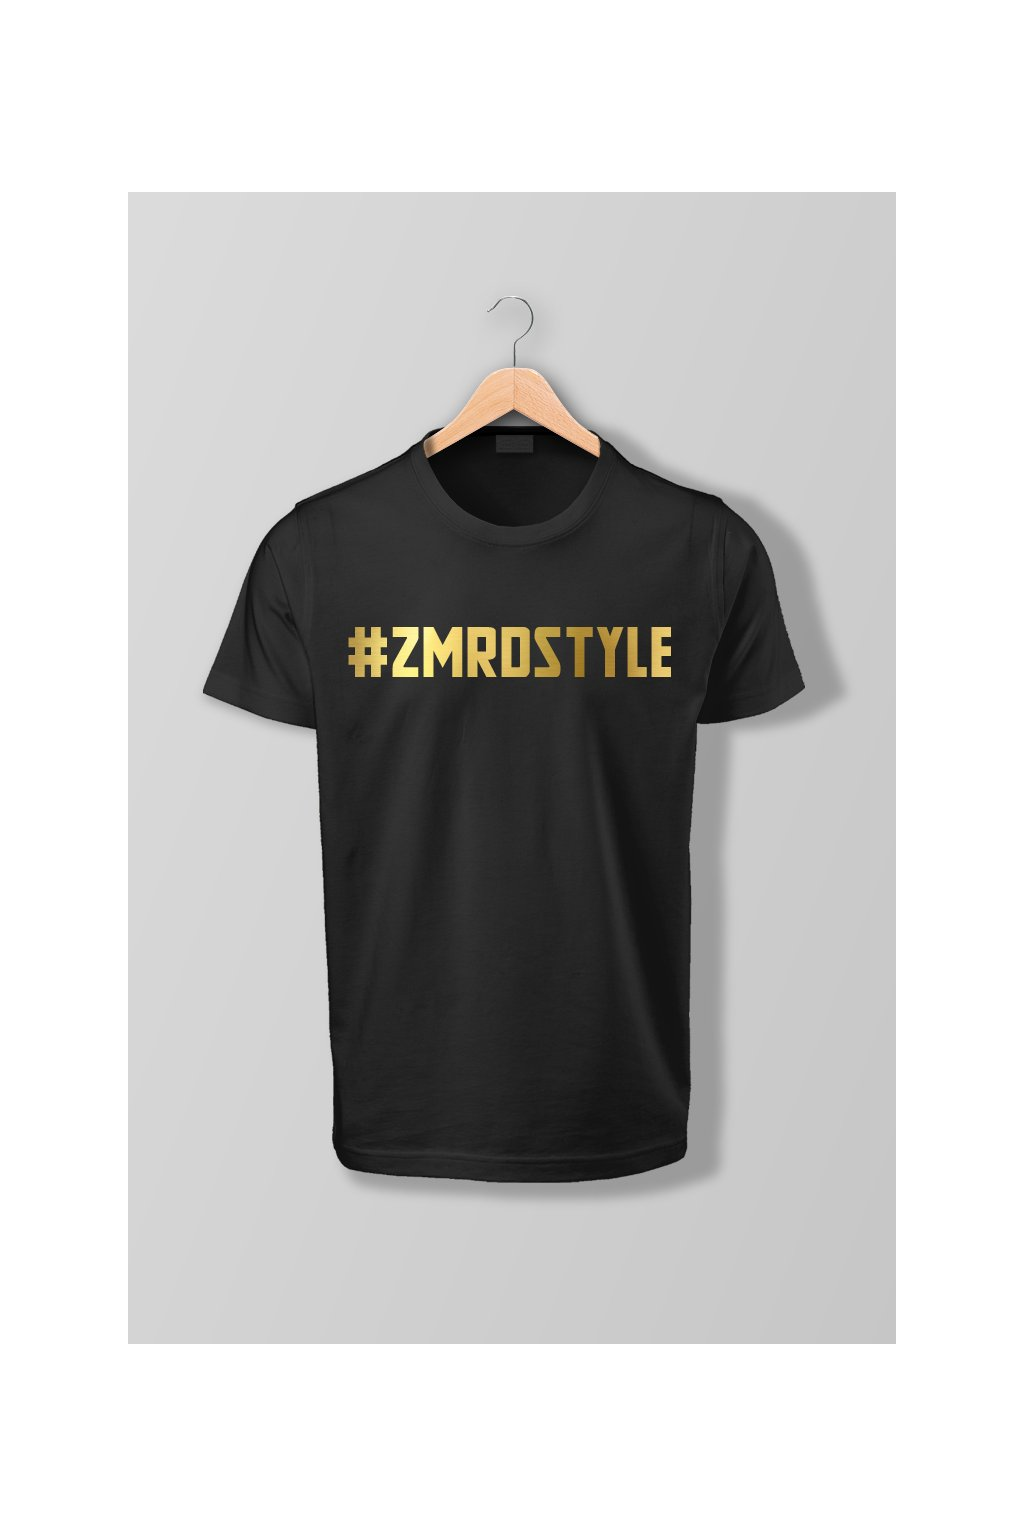 zmrdstyle gold